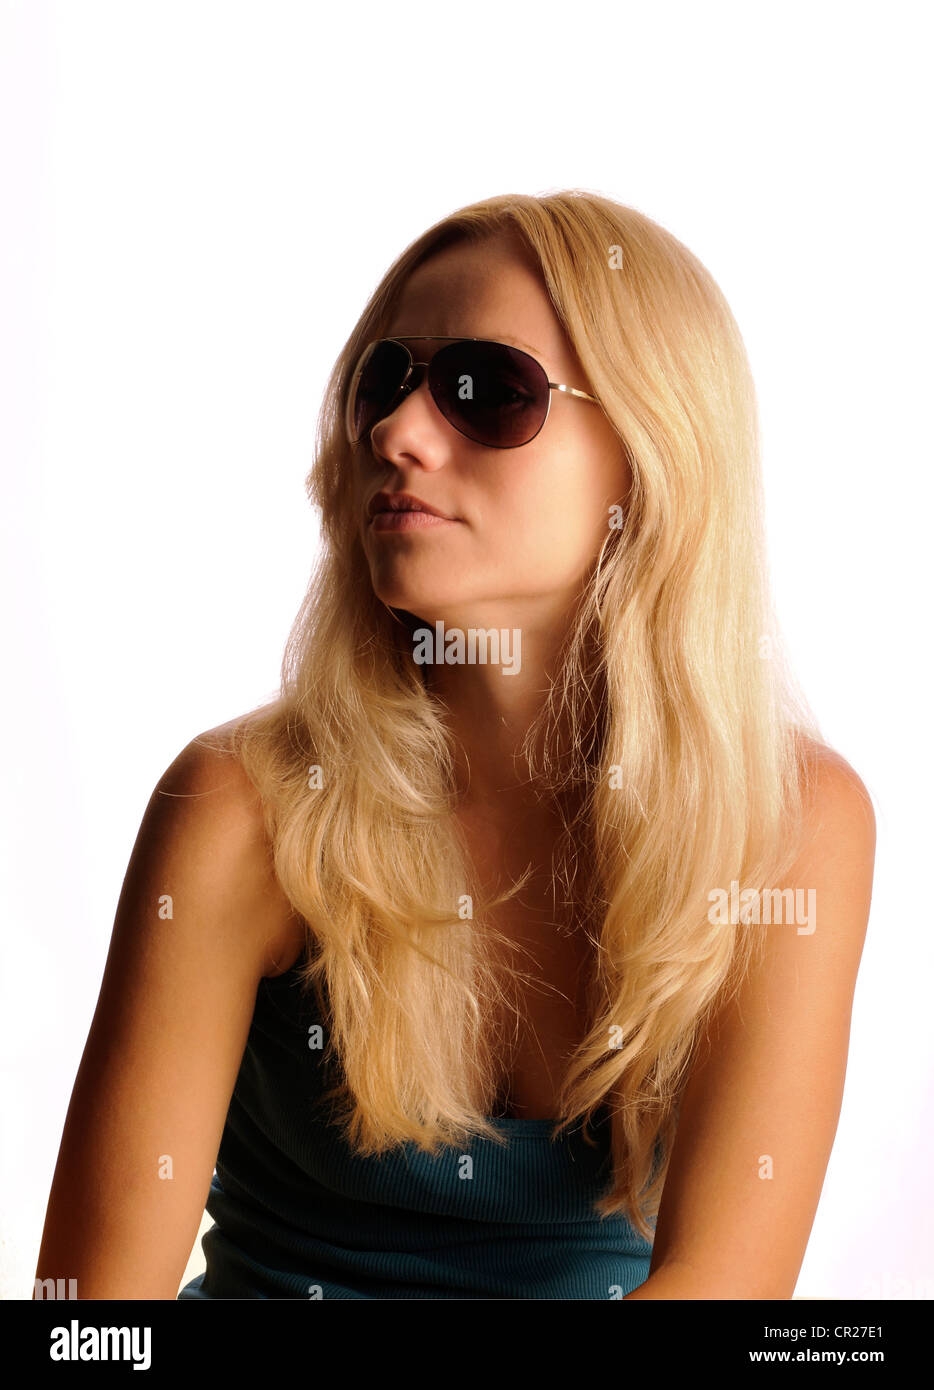 Girl with sunglasses - Stock Image